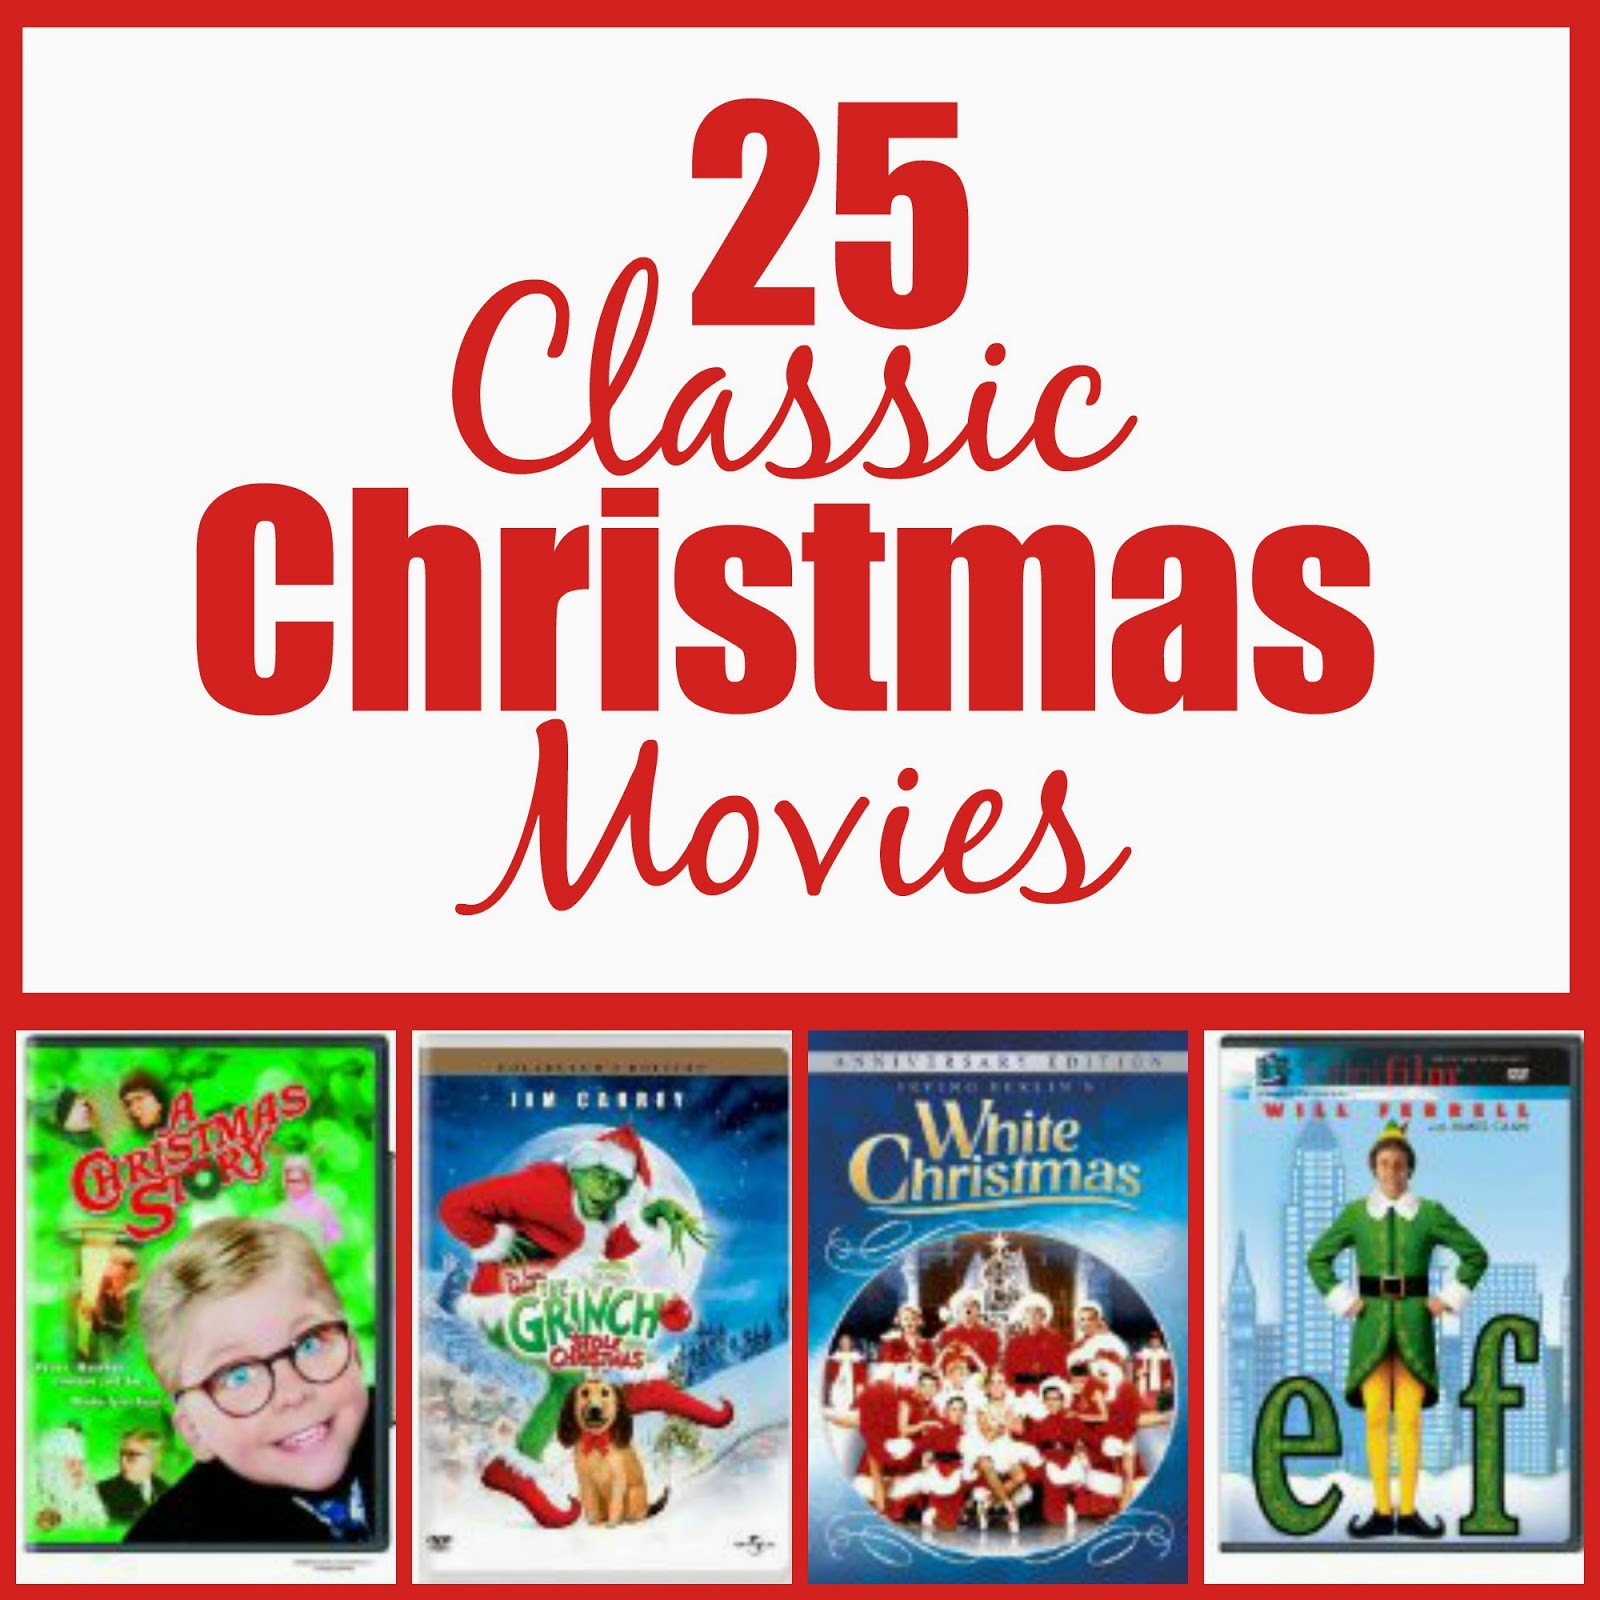 Today 39 S Taste 25 Classic Christmas Movies